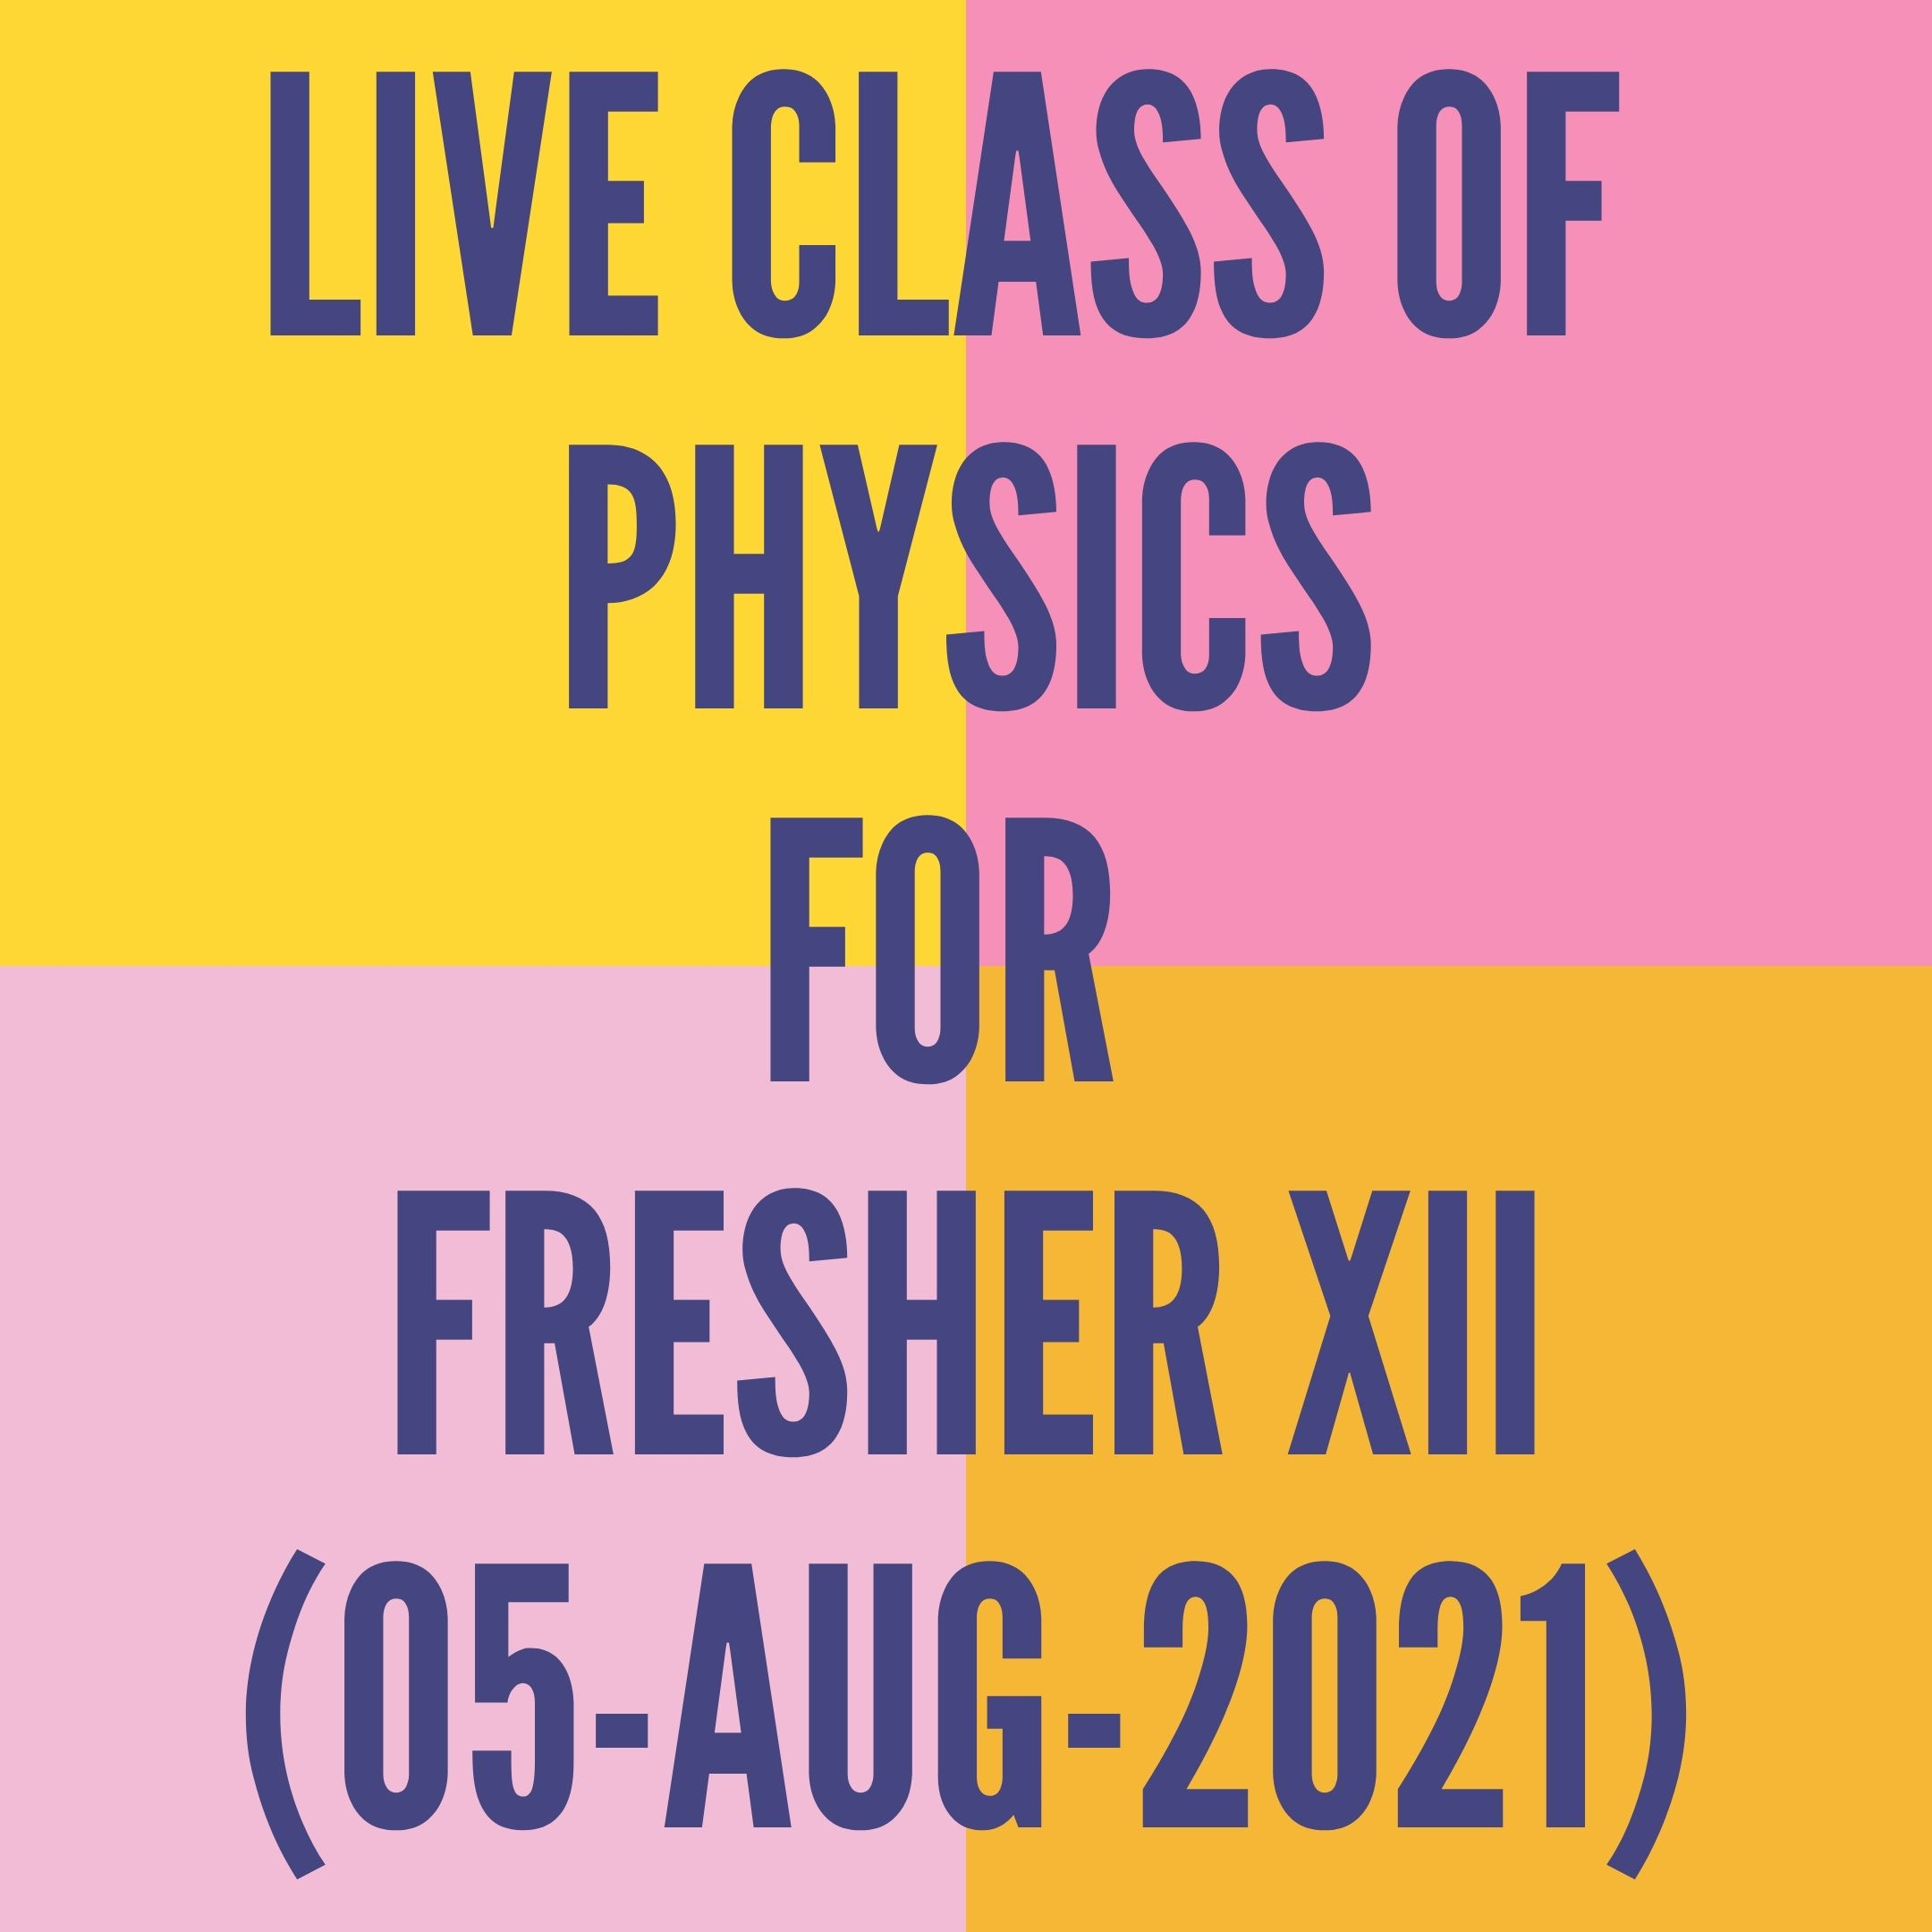 LIVE CLASS OF PHYSICS FOR FRESHER XII (05-AUG-2021) CURRENT ELECTRICITY